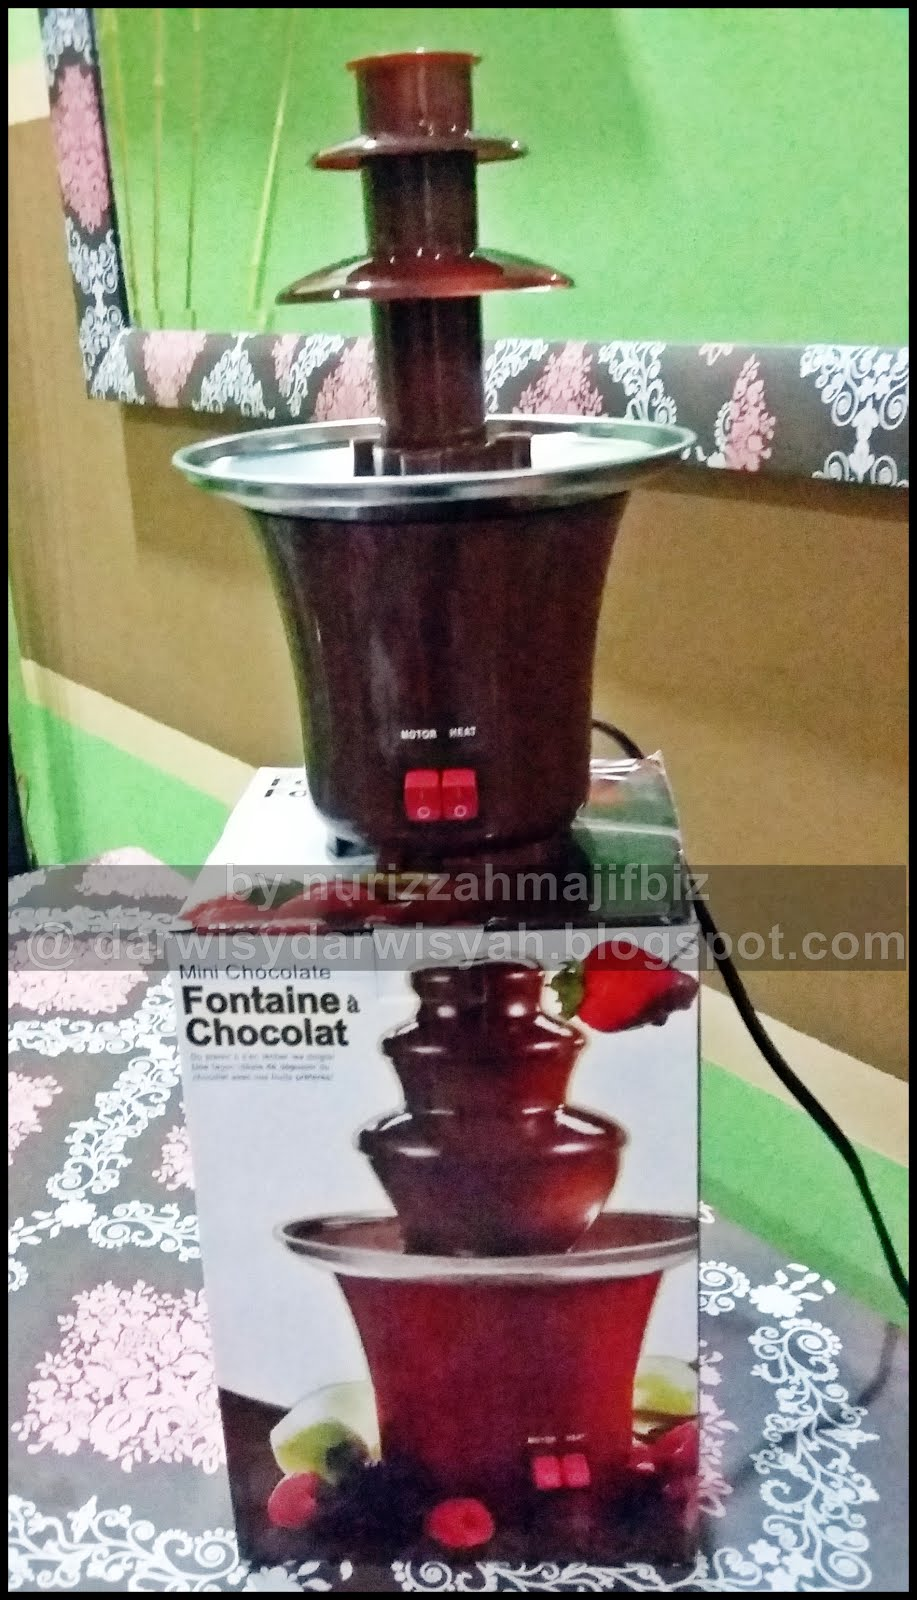 [FOR SALE] CHOCOLATE FOUNTAIN MACHINE MINI SIZE FOR 200 GM